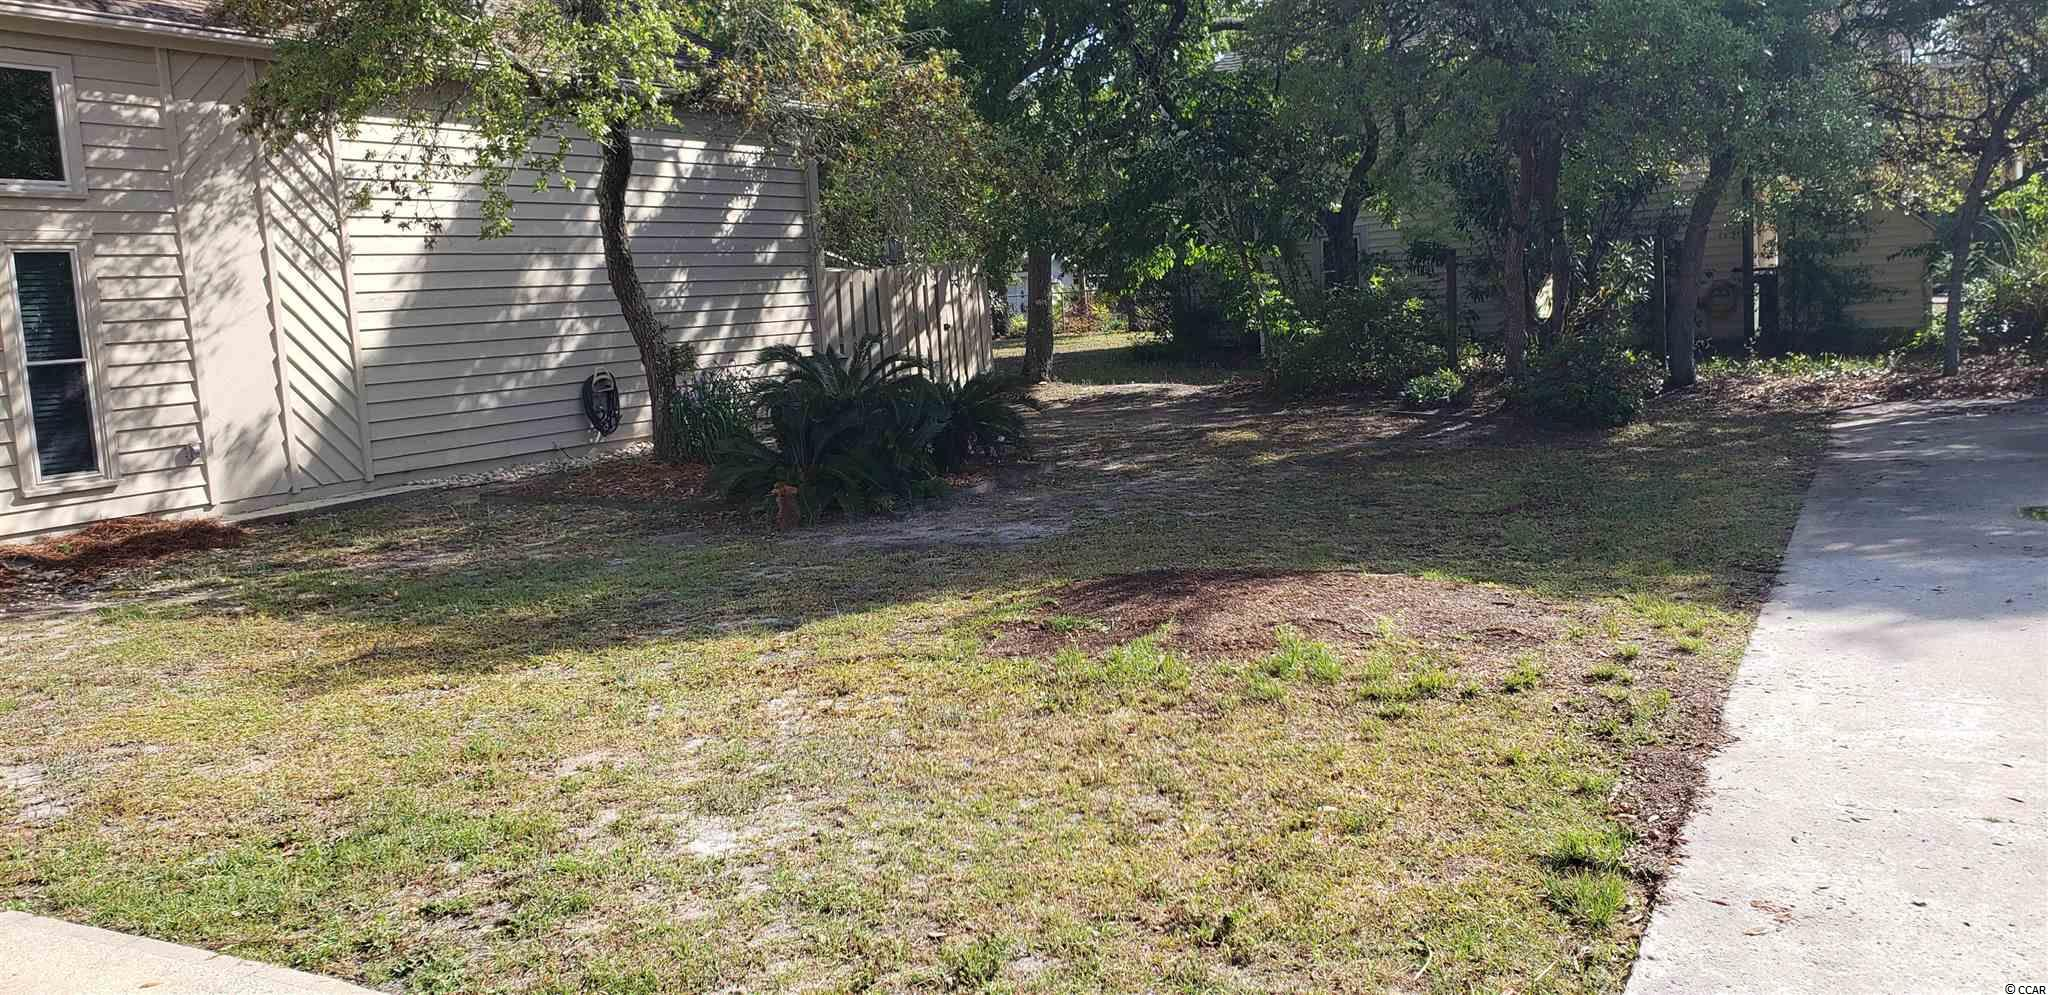 Patio home lot 3 blocks off the beach in Crescent Beach section of NMB. Prime location to build that beach getaway, vacation rental or primary residence.